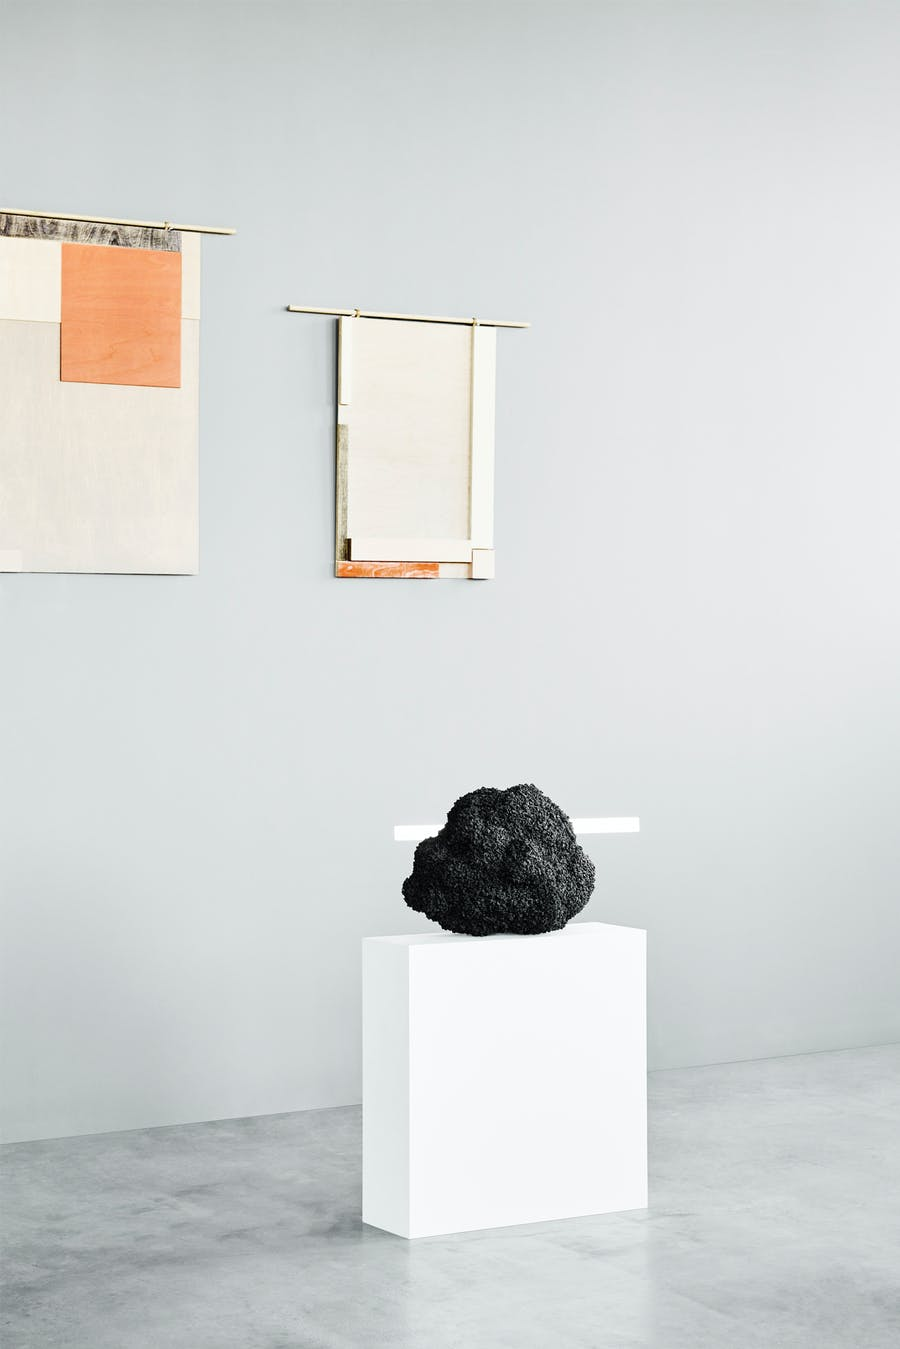 Troels Flensted, Perception Mirrors, and Stine Mikkelsen, The Art of Sitting. Photo: Tommy Frost via Adorno Gallery